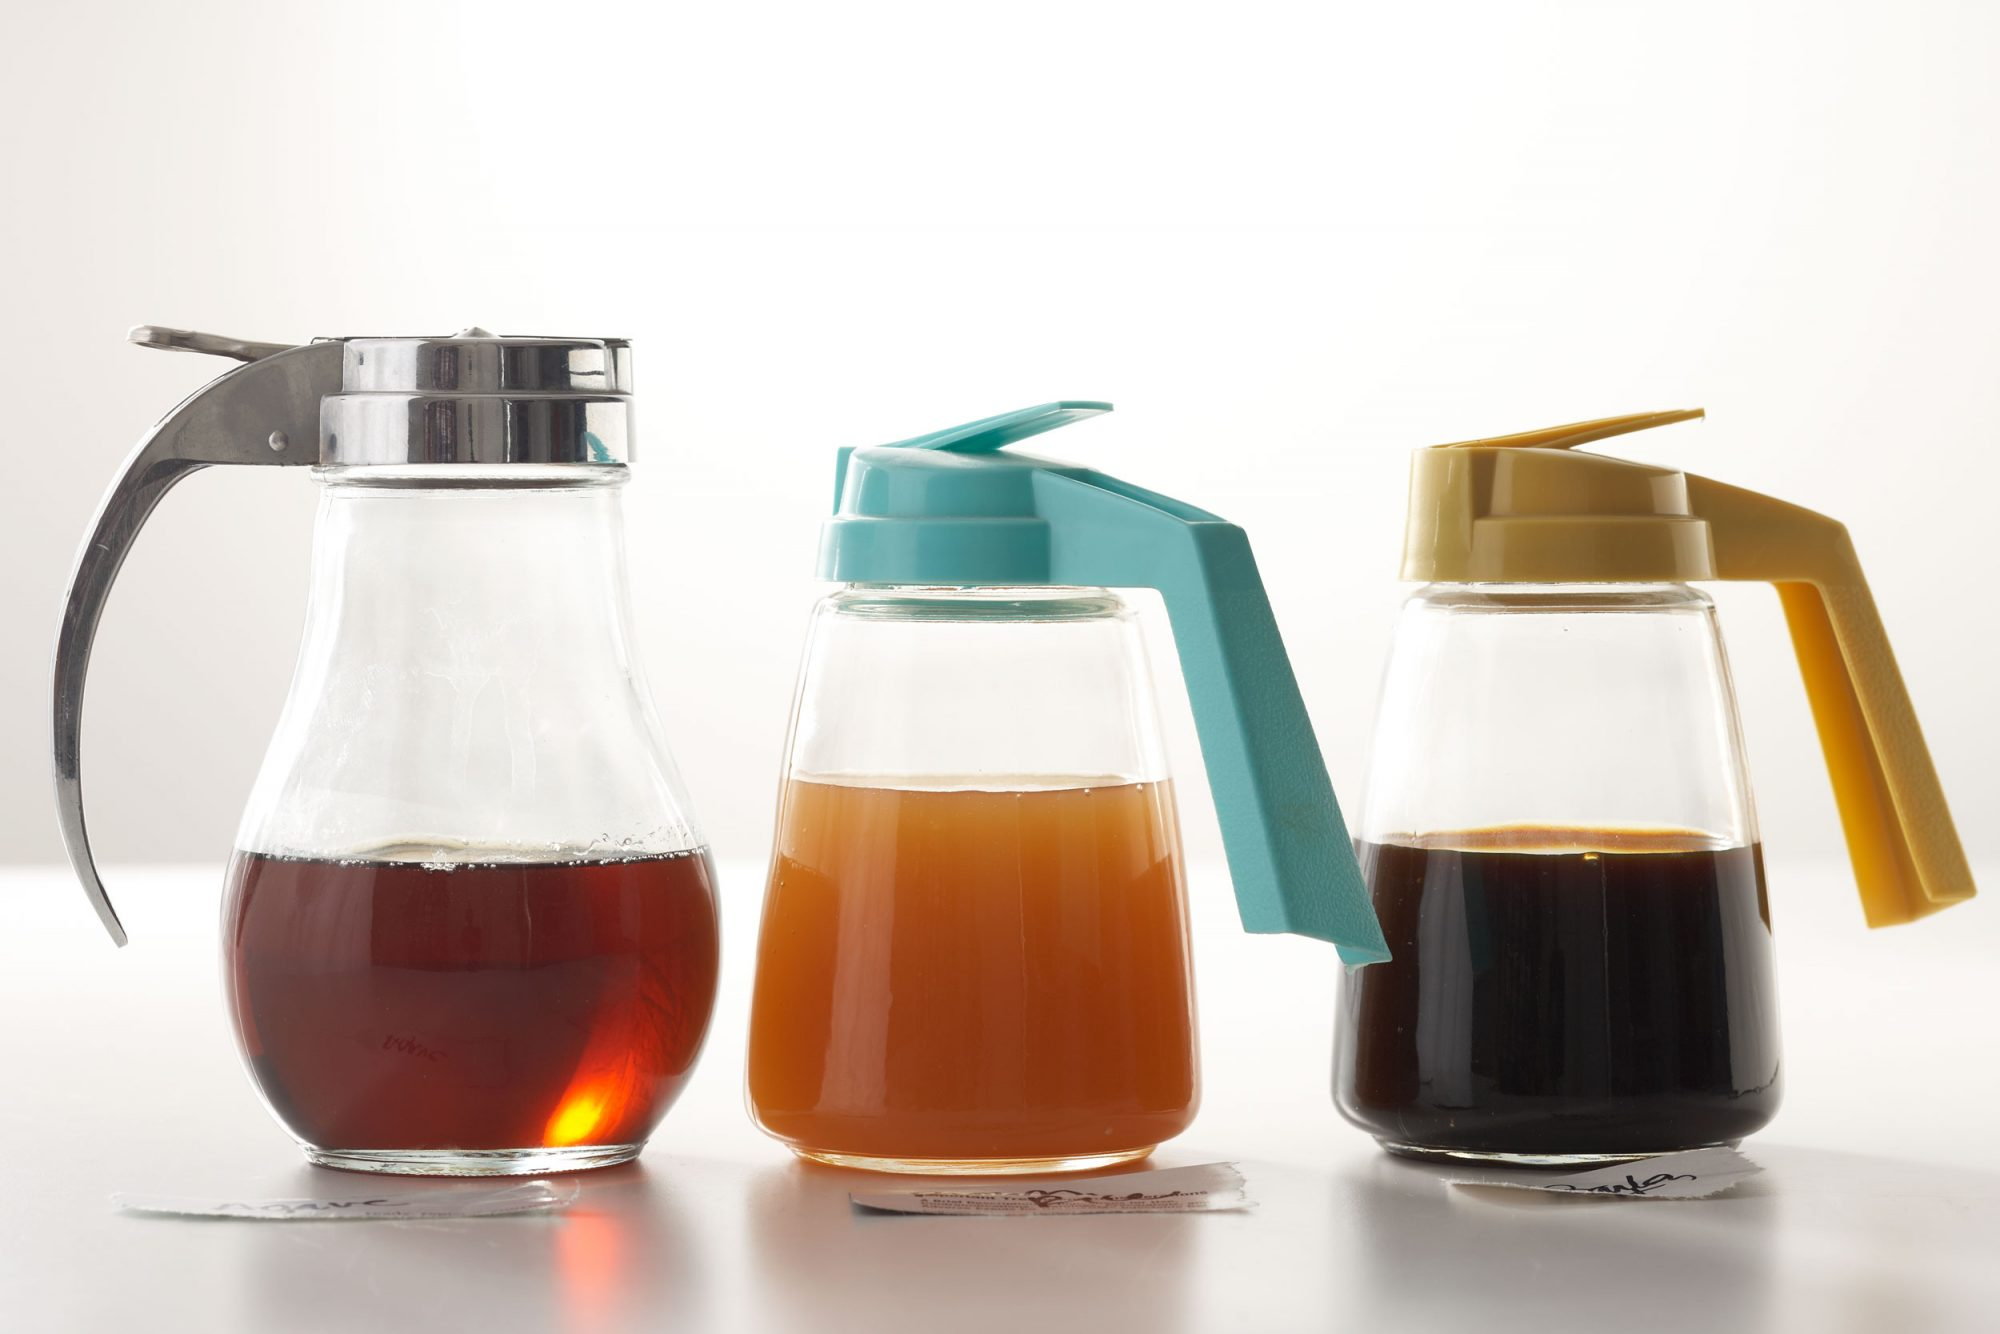 bottles of maple syrup on a white table